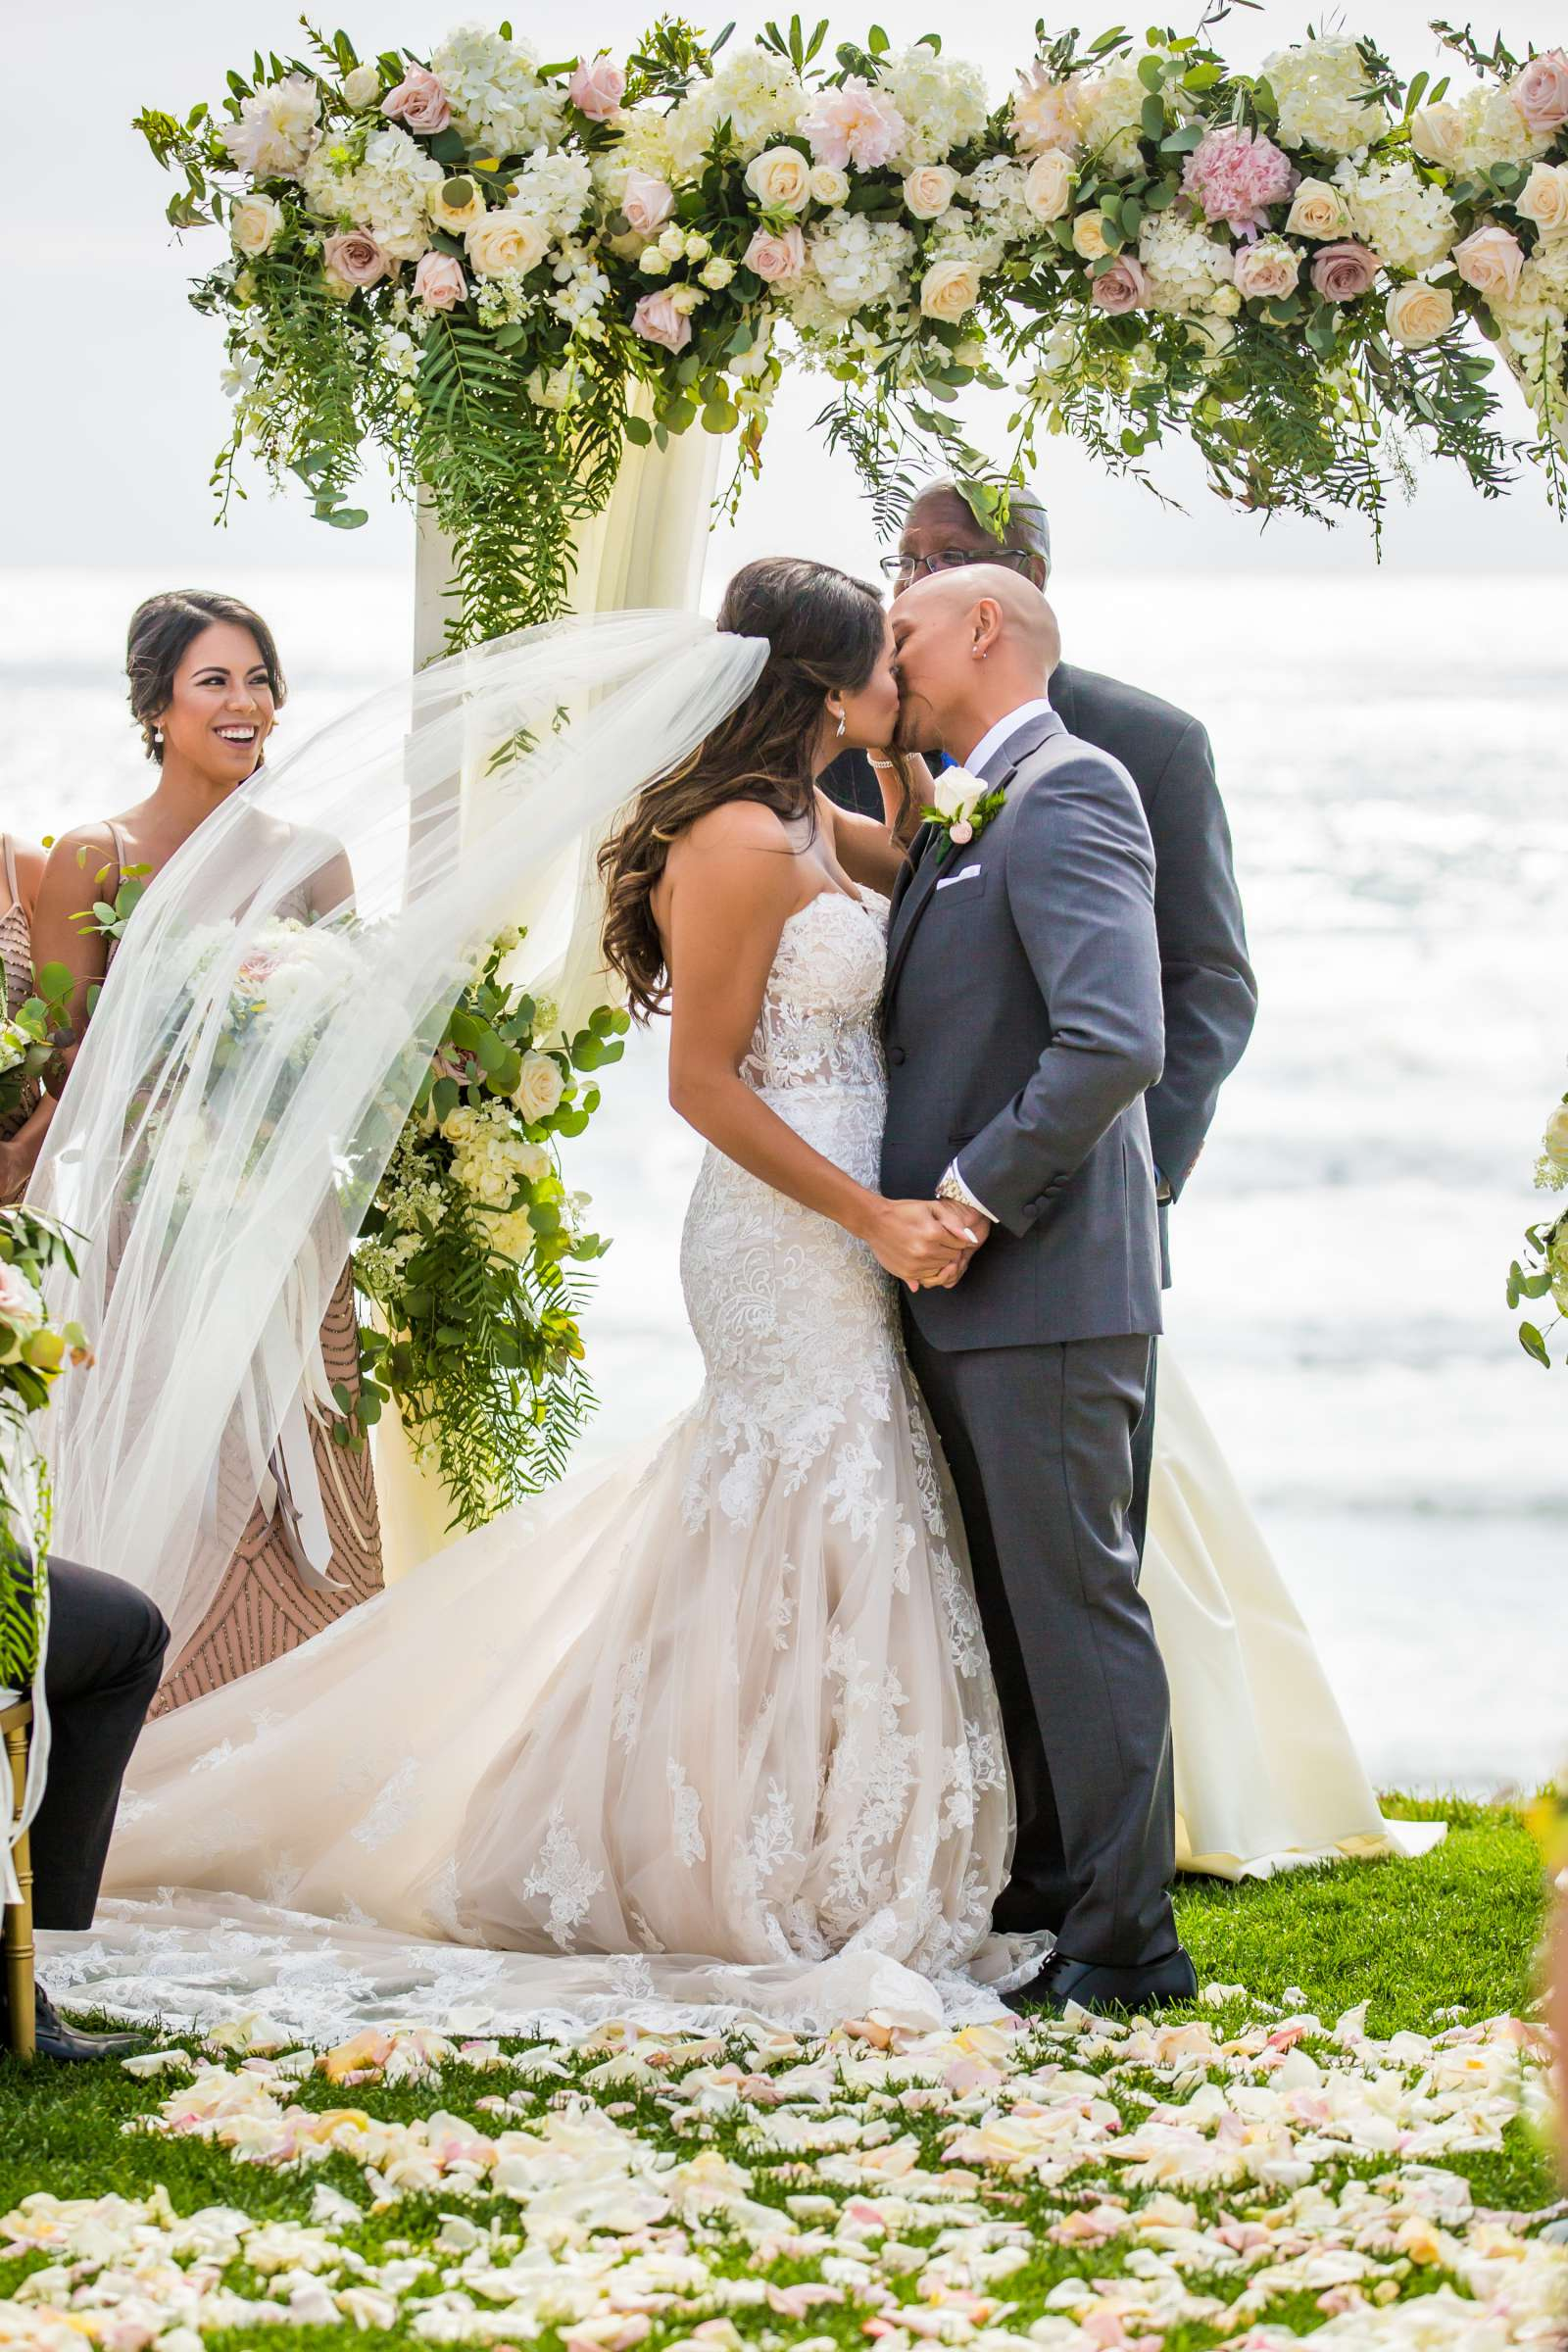 Scripps Seaside Forum Wedding coordinated by Lavish Weddings, Cindy and Justin Wedding Photo #381836 by True Photography